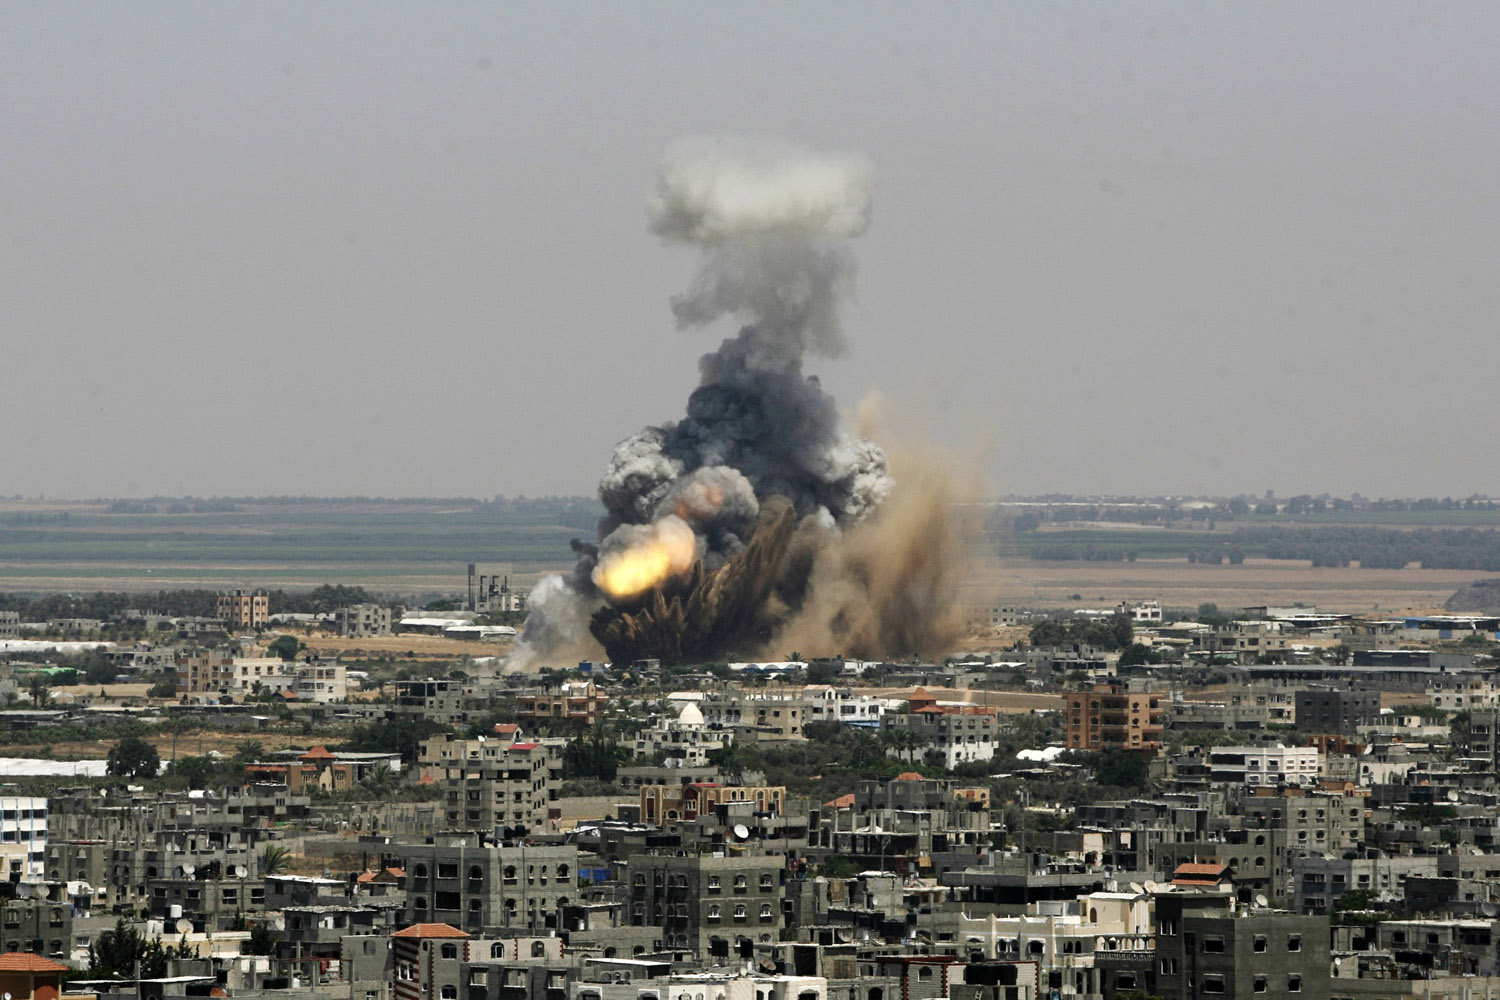 Jul. 8, 2014. An Israeli missile explodes on impact in Rafah, southern Gaza Strip.